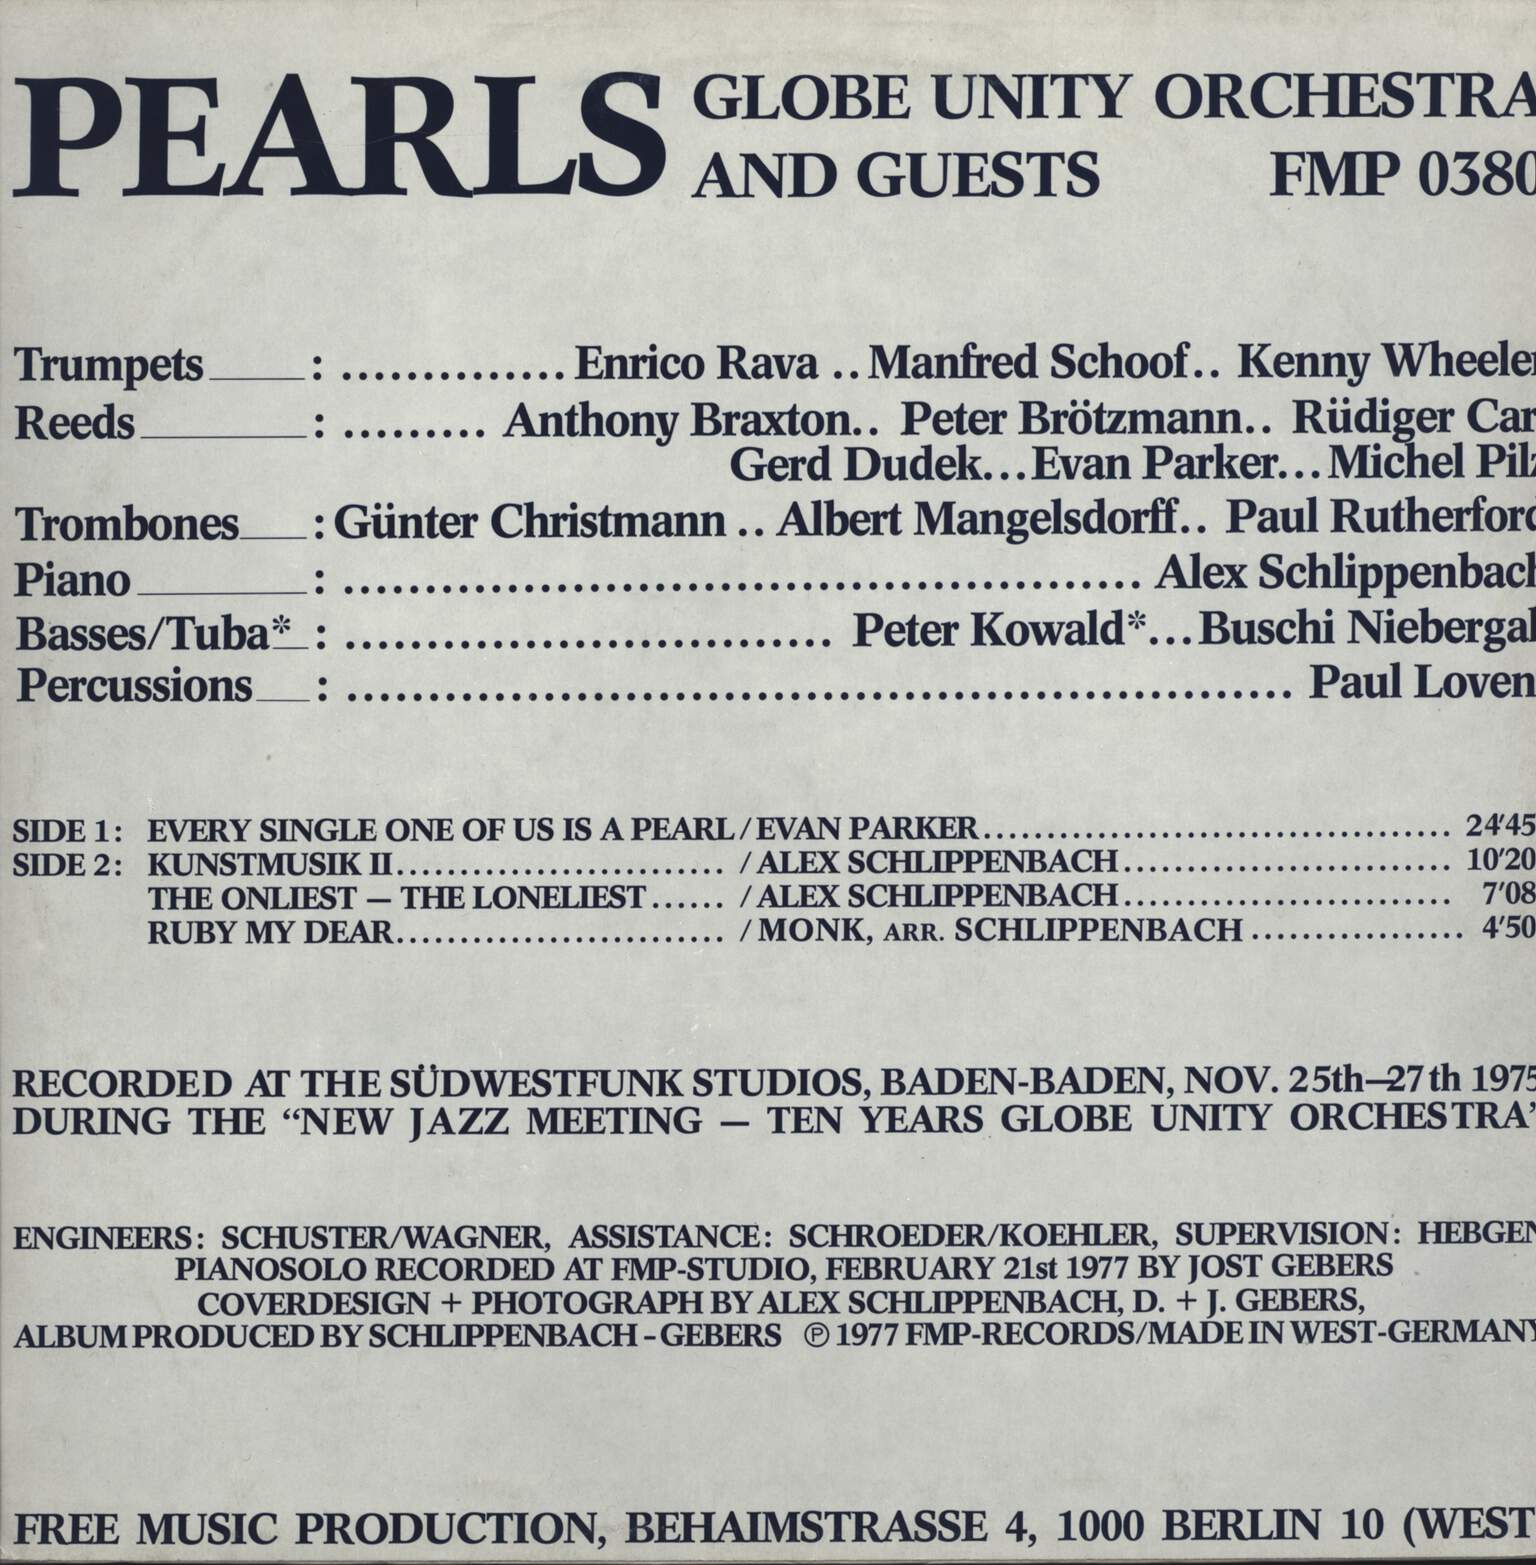 Globe Unity Orchestra And Guests: Pearls, LP (Vinyl)